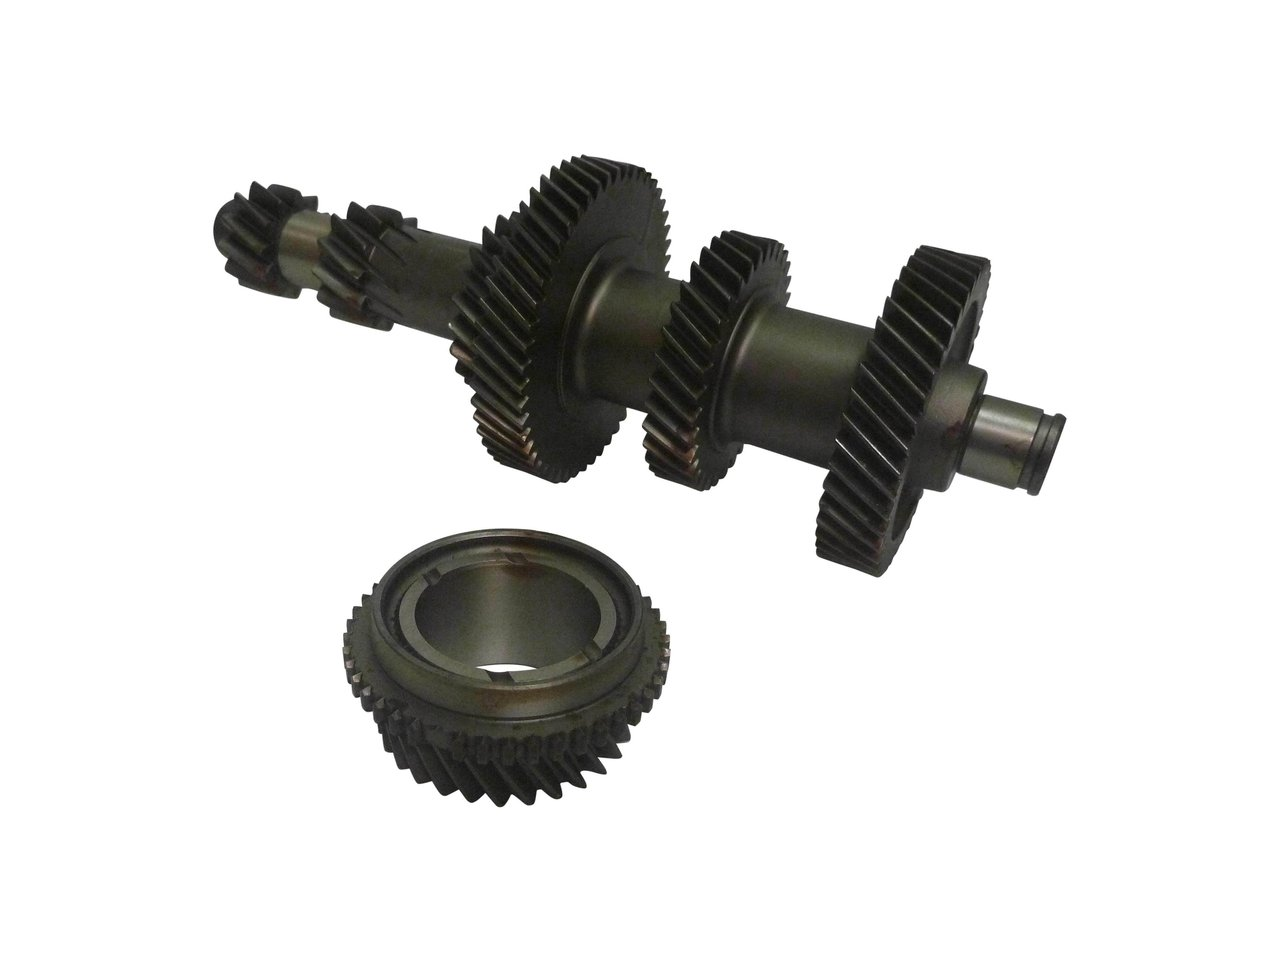 5th Gear Ratio Change suitable for Landcruiser HDJ VDJ 76 78 79